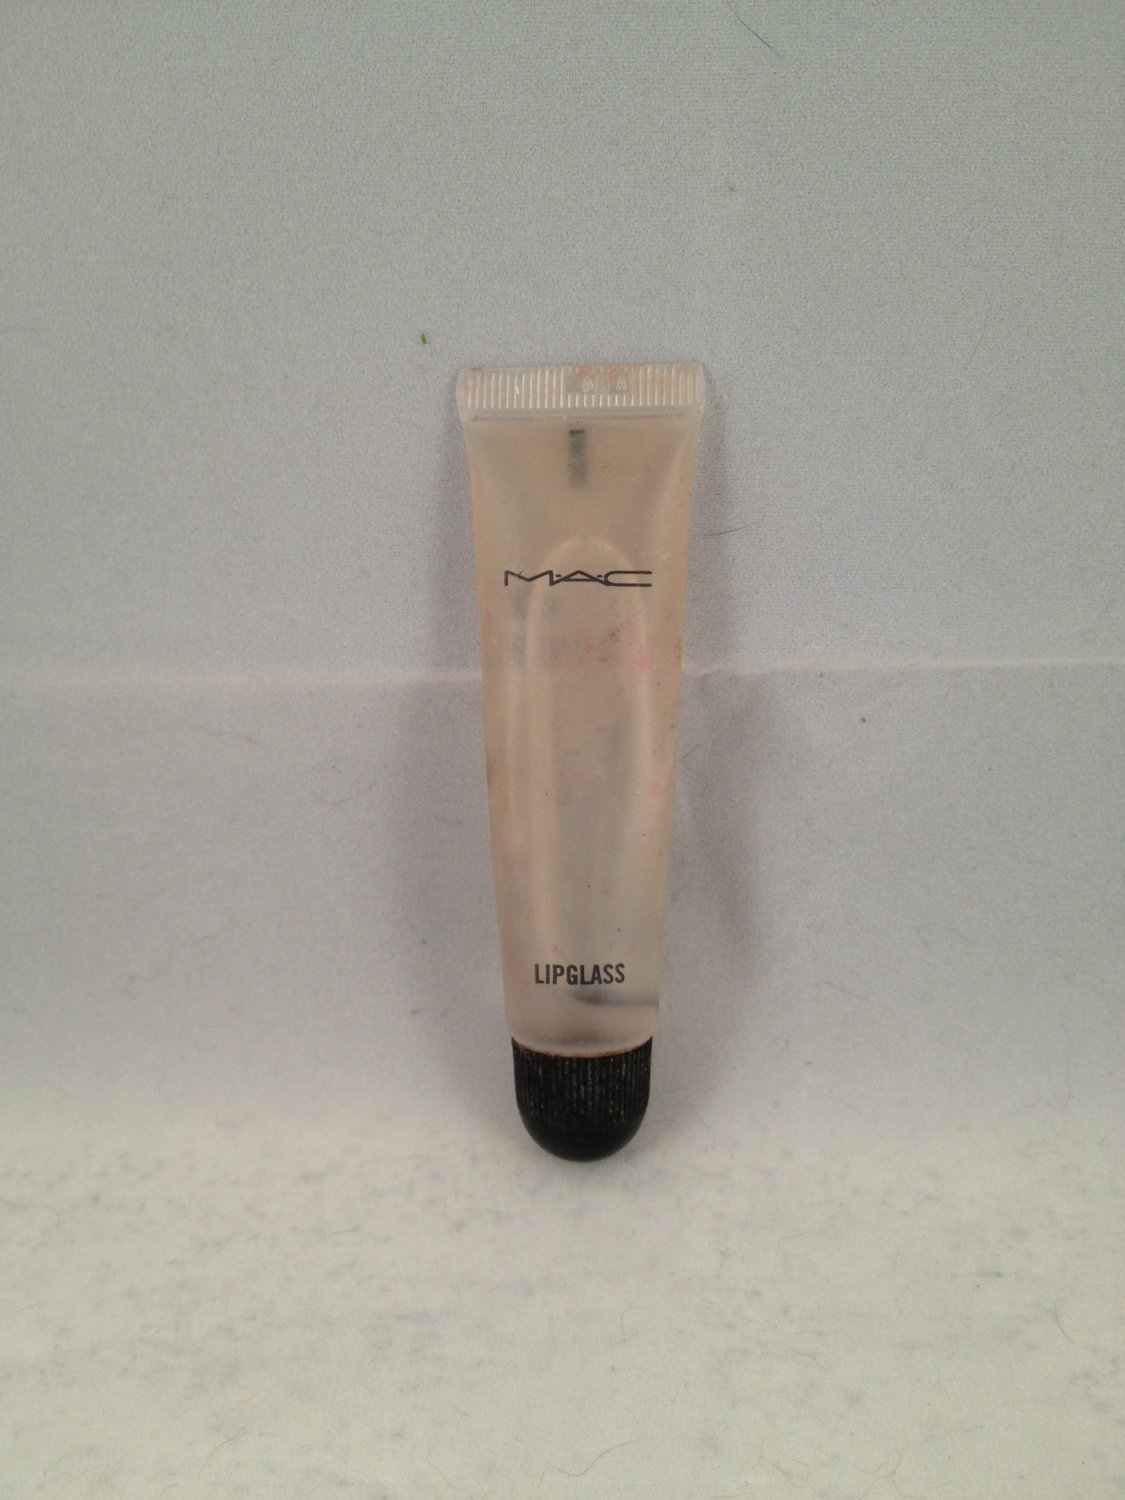 mac cosmetics clear lipglass lip gloss lipgloss glass